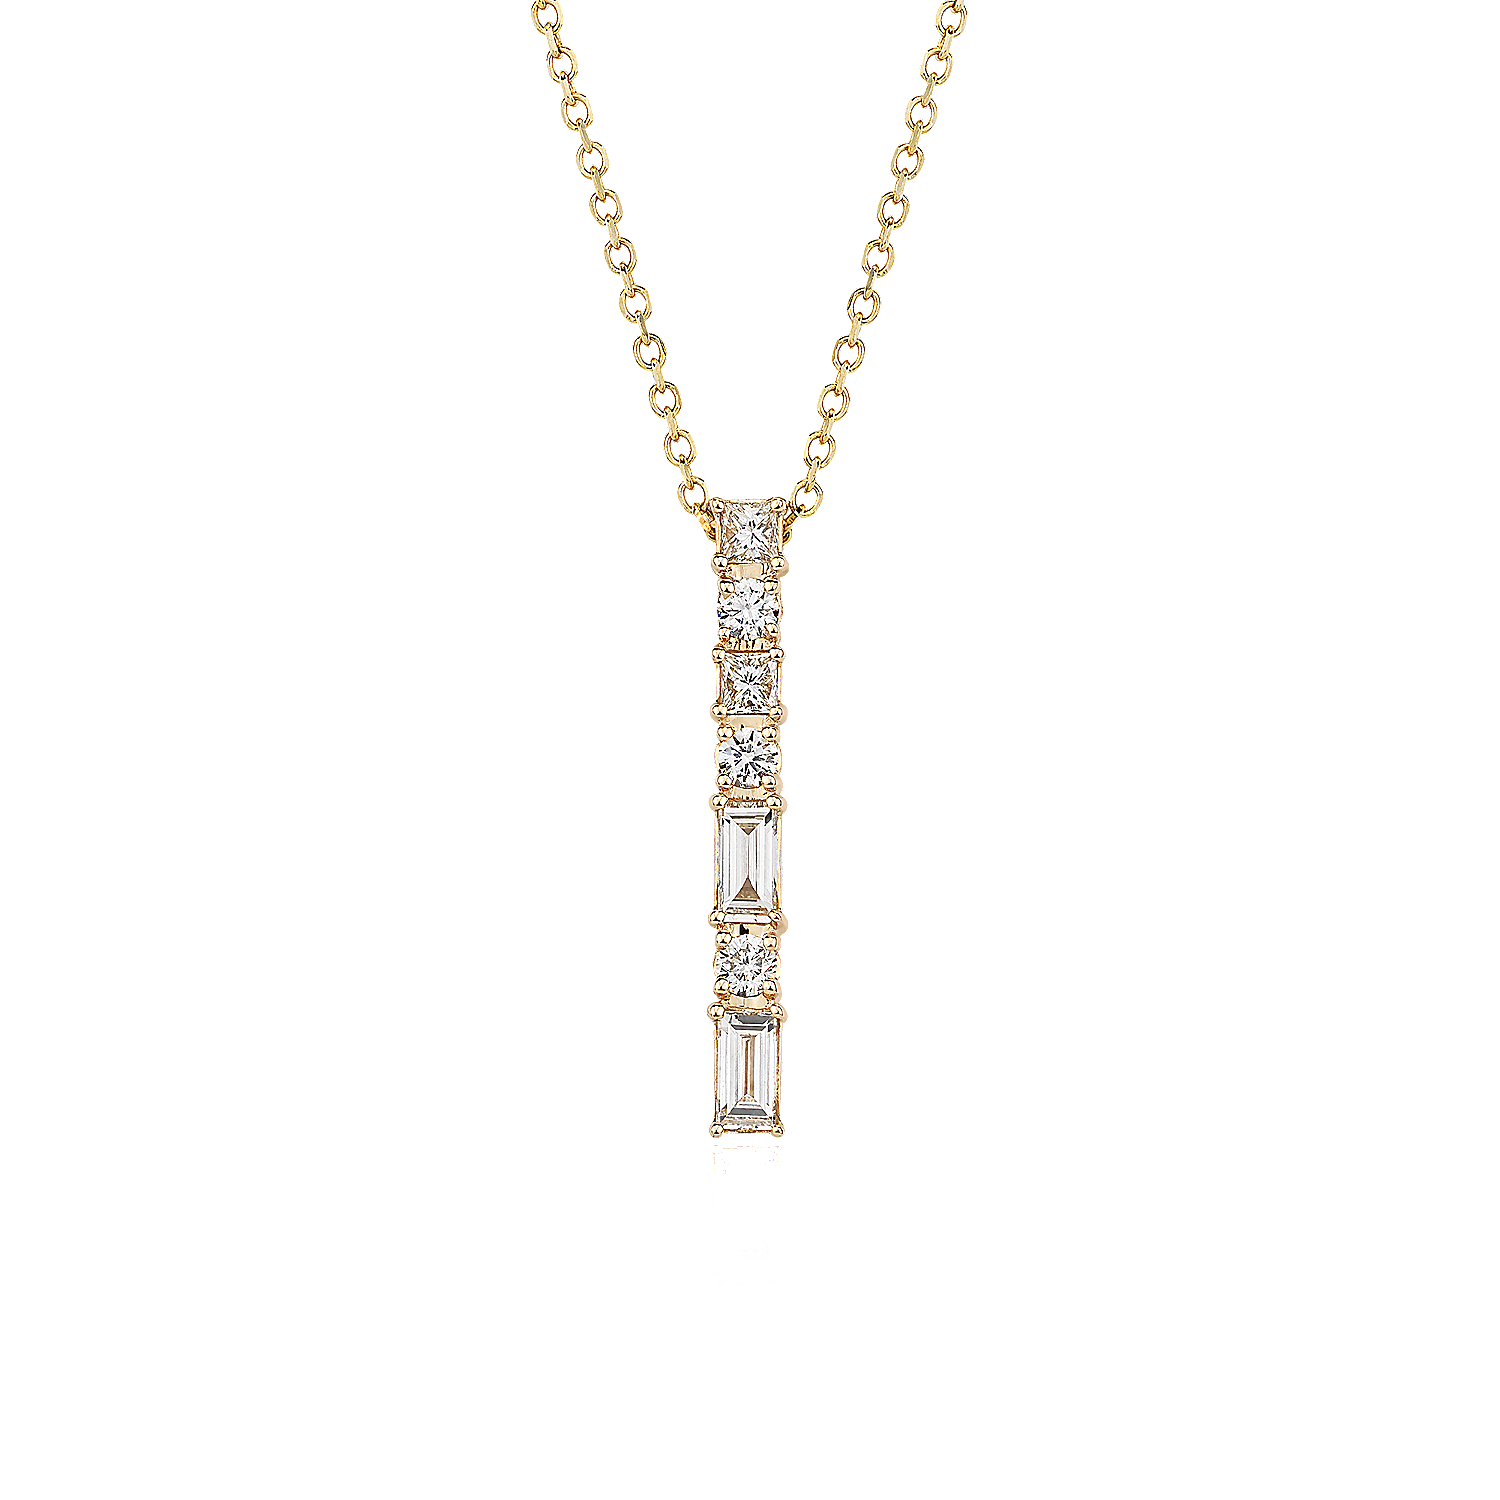 57608_Colin Cowie Dot Dash Pendant Yellow Gold.jpg